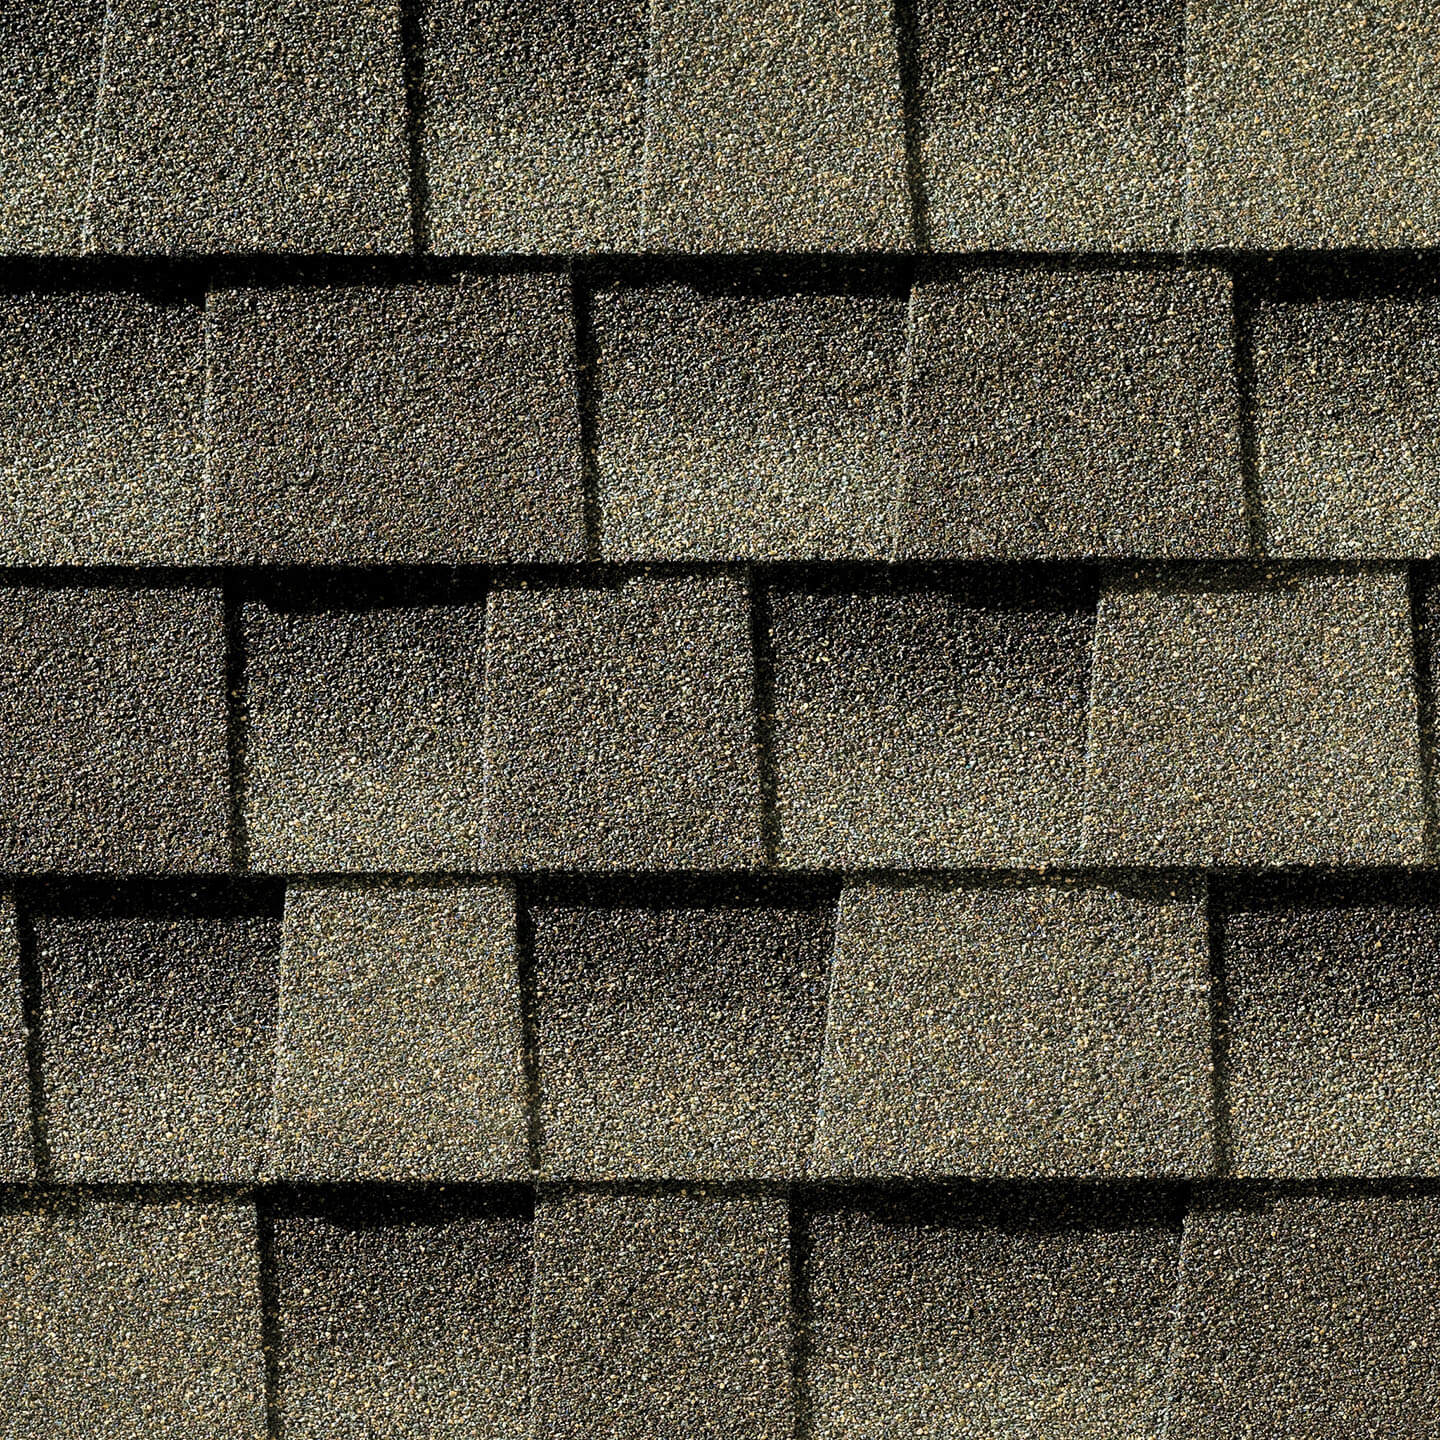 Timberline Weathered Wood shingle sample